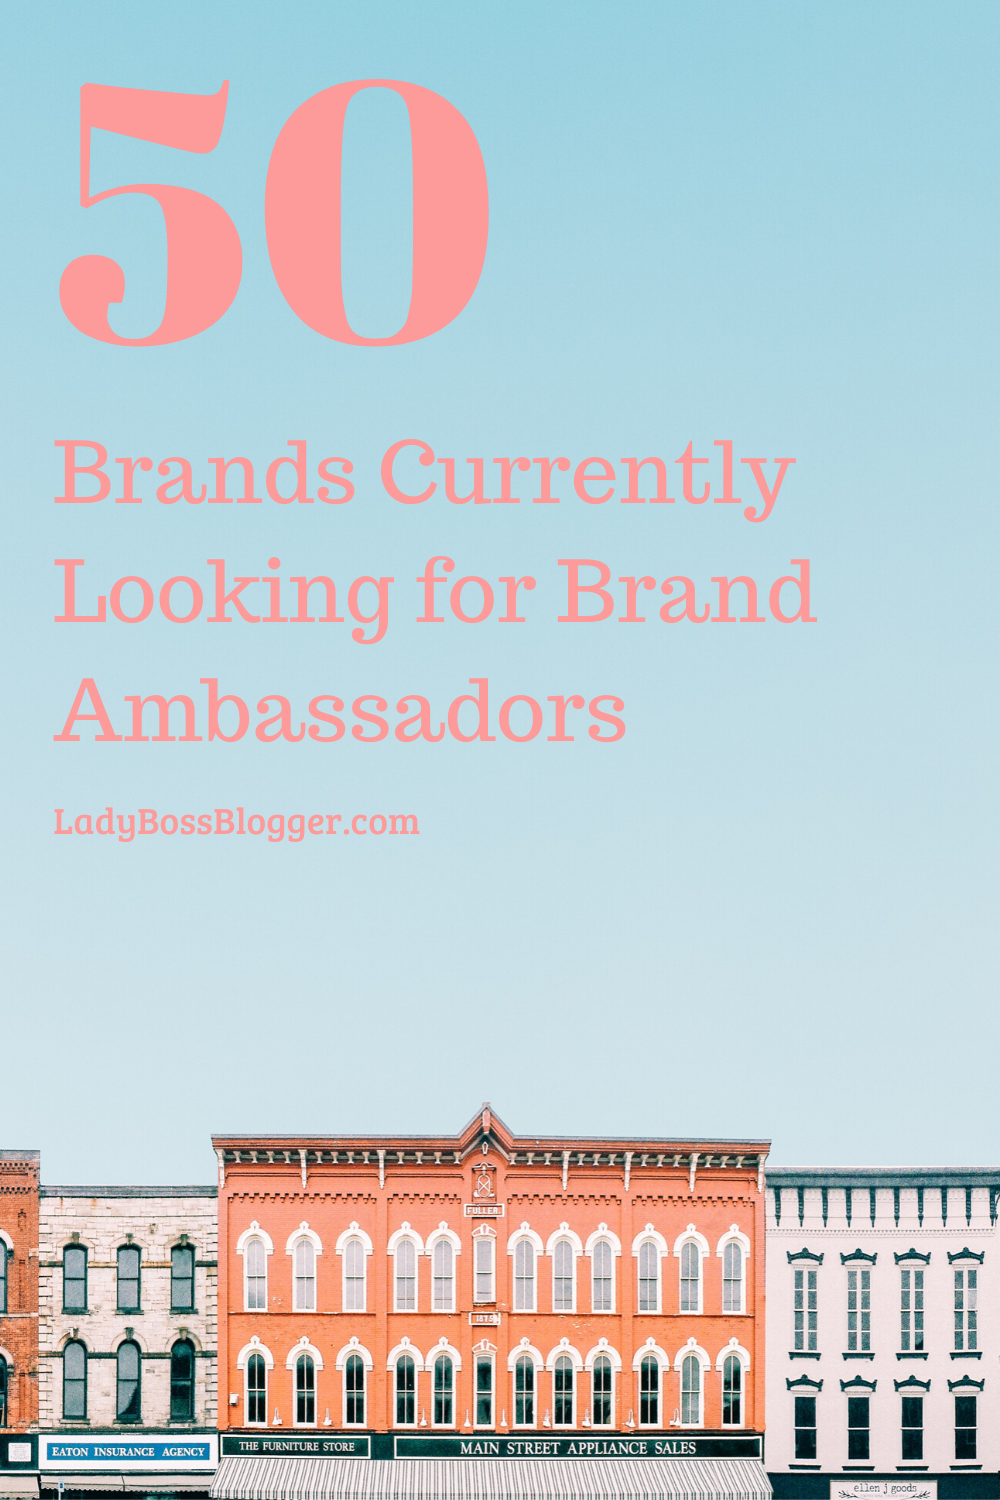 50 Brands Currently Looking For Brand Ambassadors In 2020 With